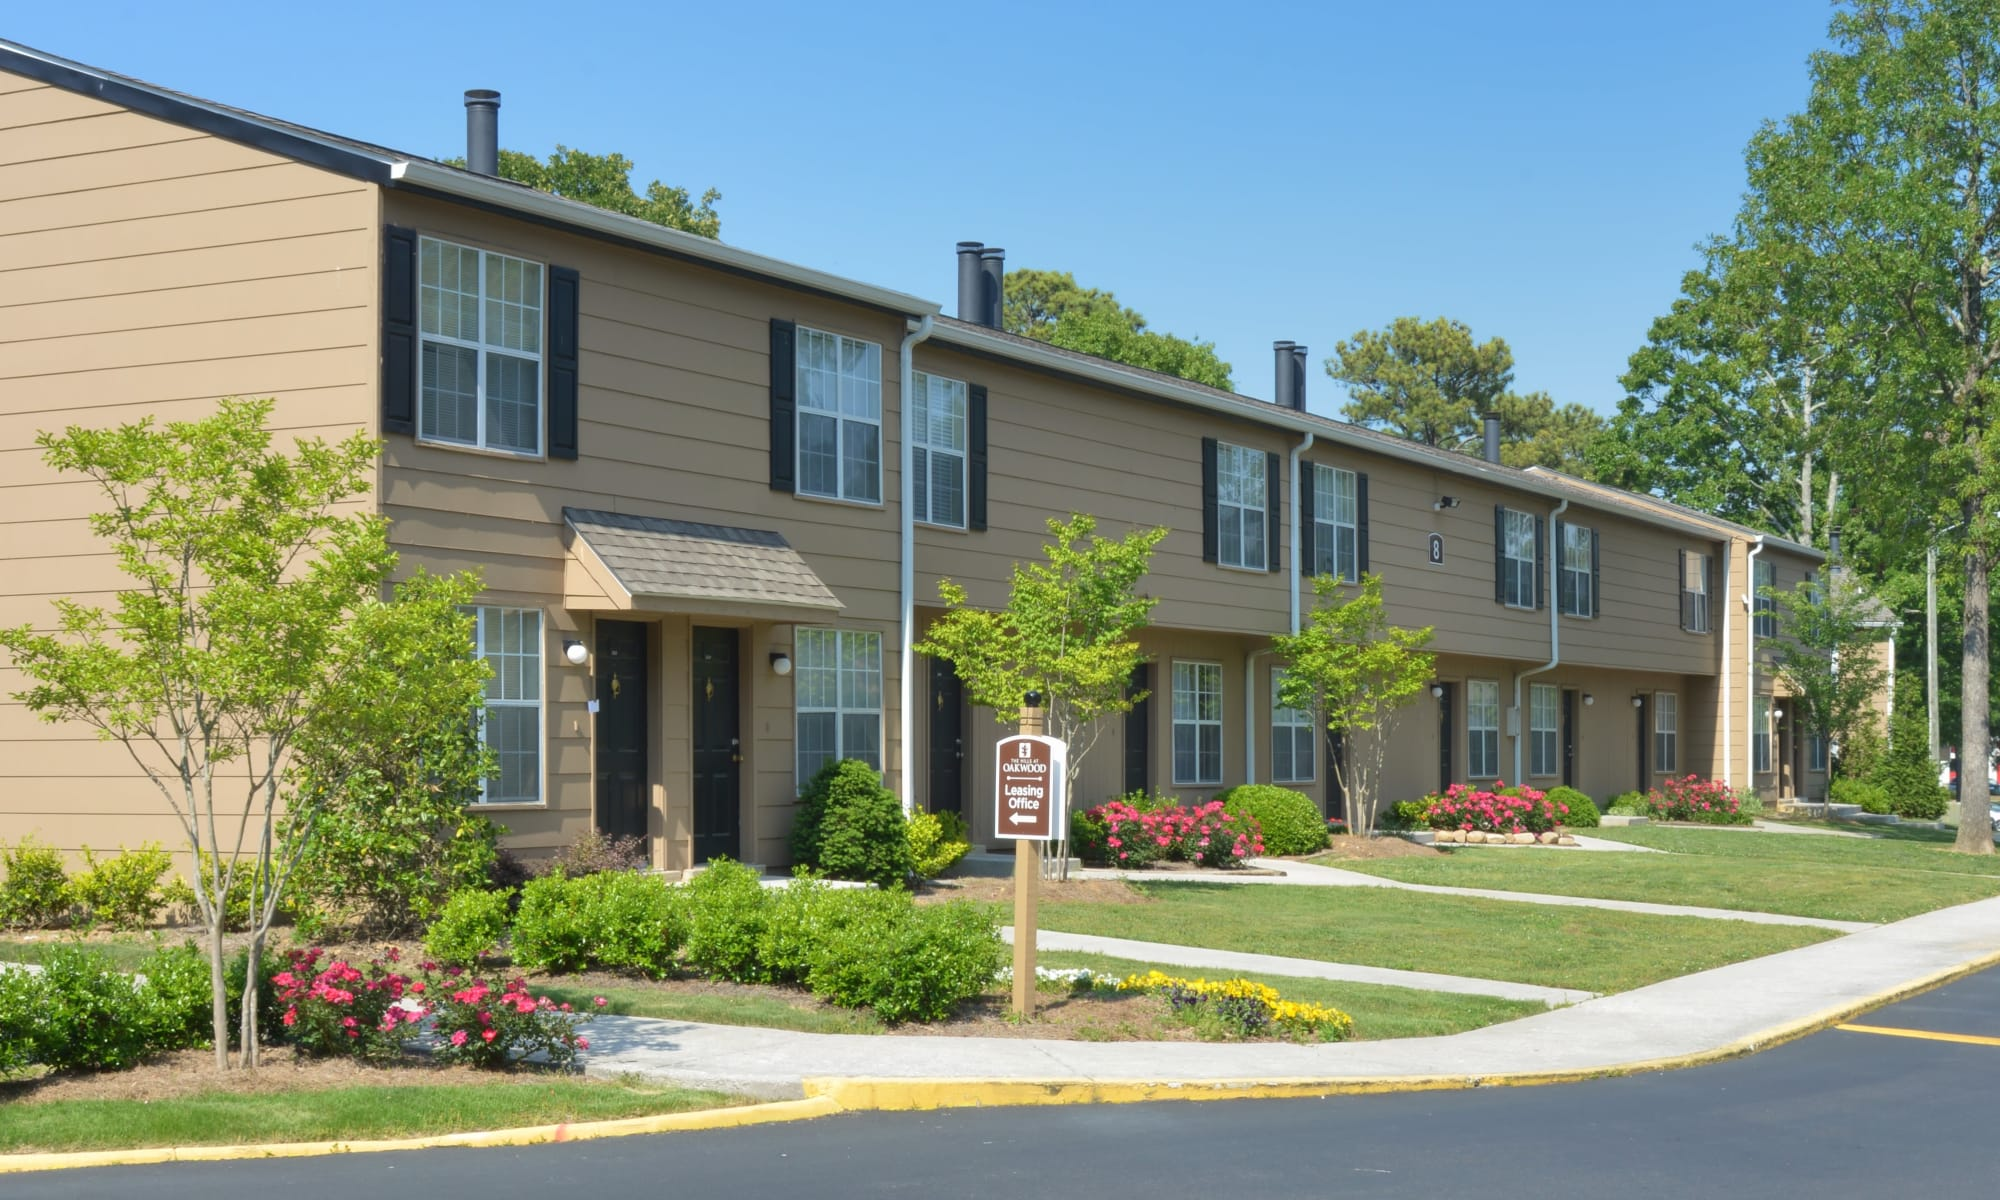 Apartments in The Hills at Oakwood in Chattanooga, Tennessee